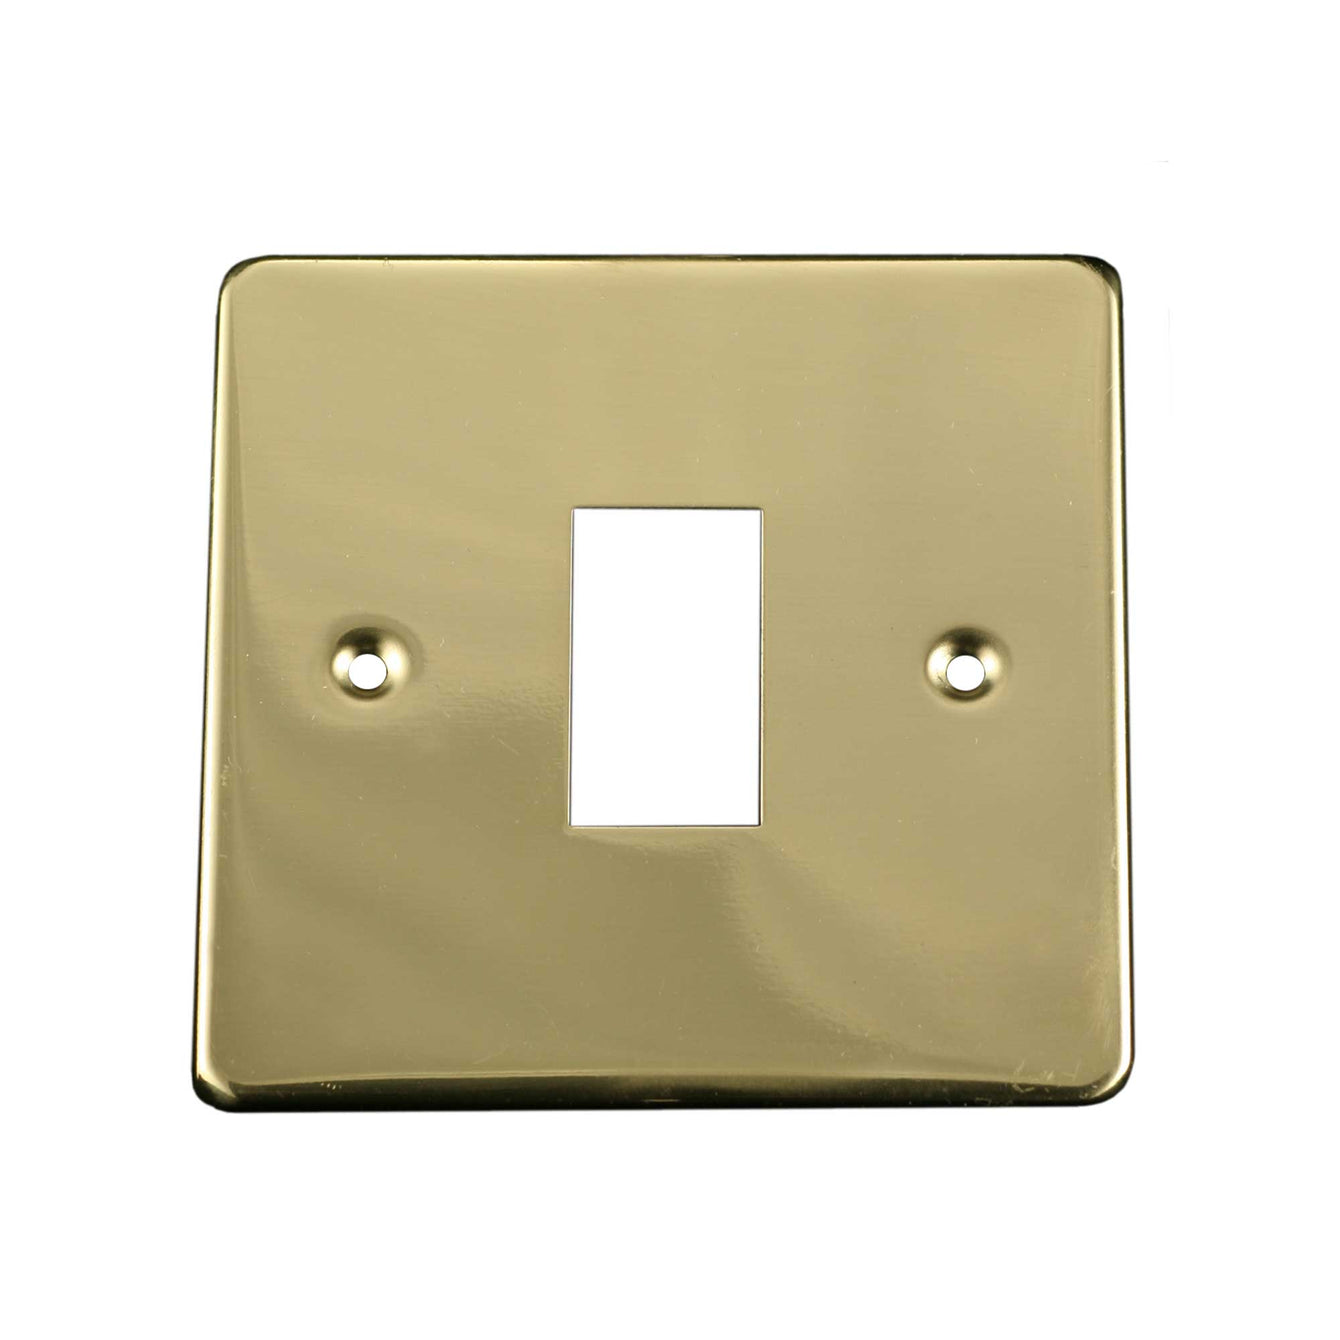 ElekTek Light Switch Conversion Cover Plate Single Victorian Antique Brass